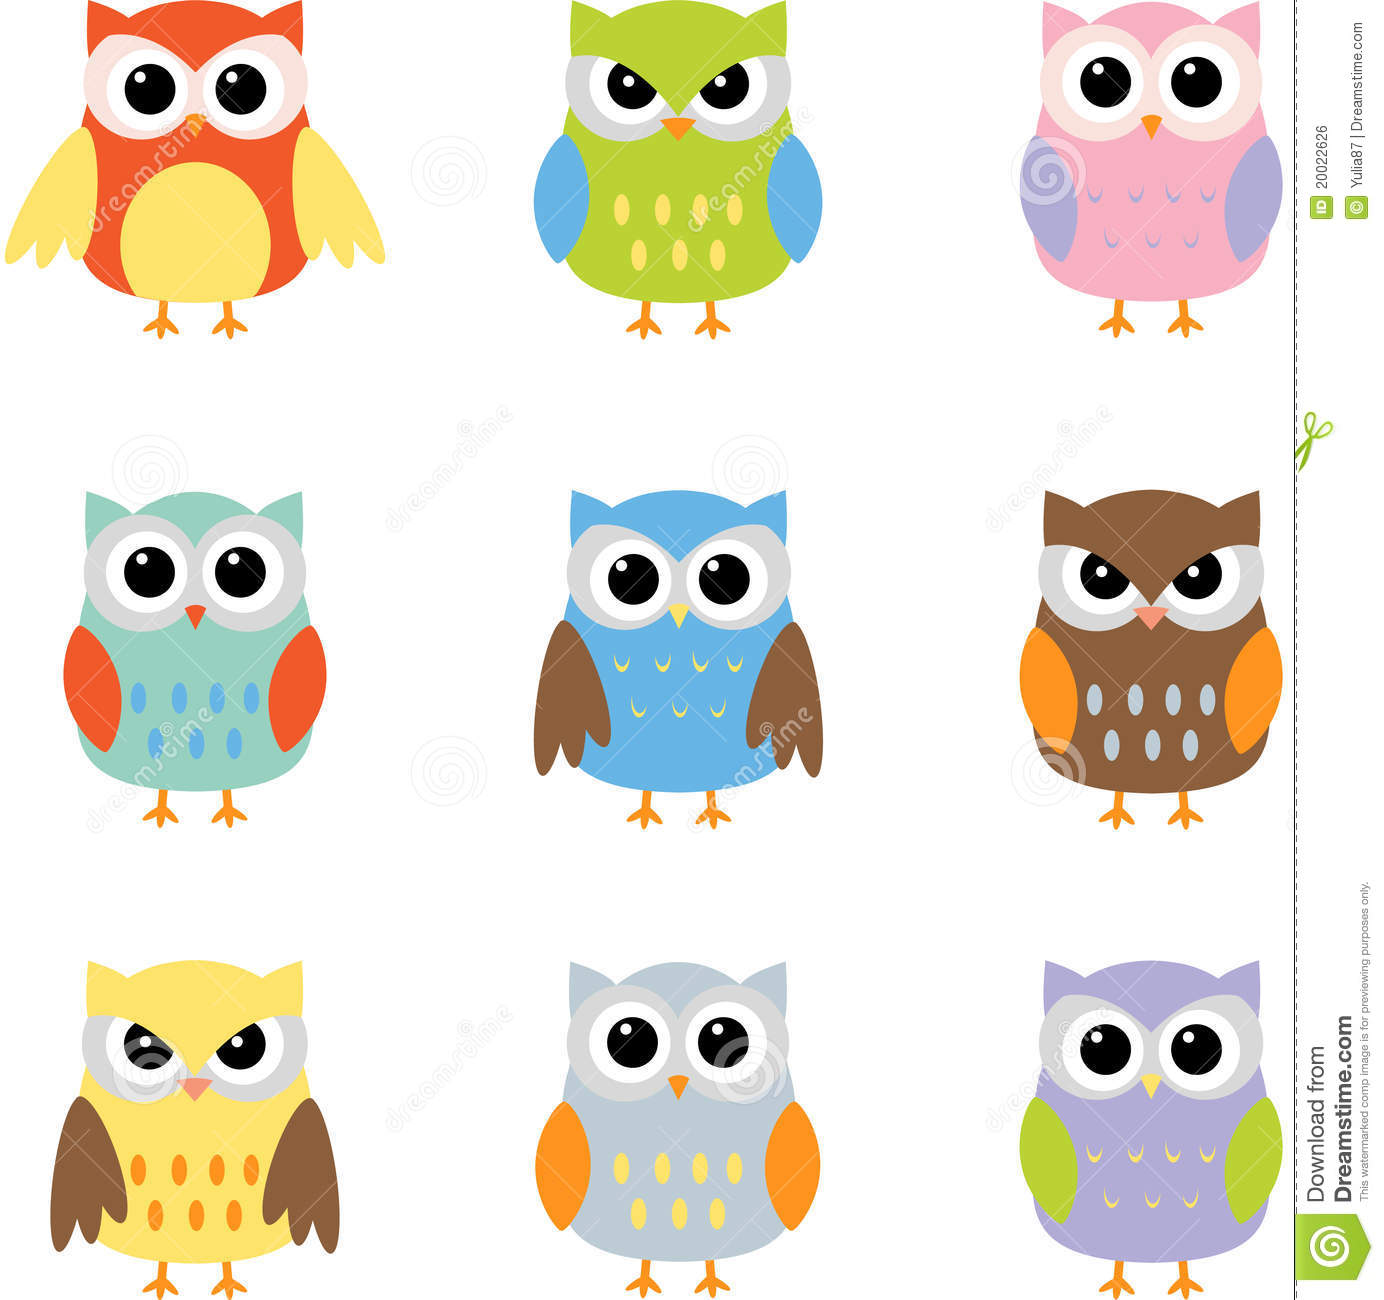 Color Owls Clip Art Royalty .-Color Owls Clip Art Royalty .-4